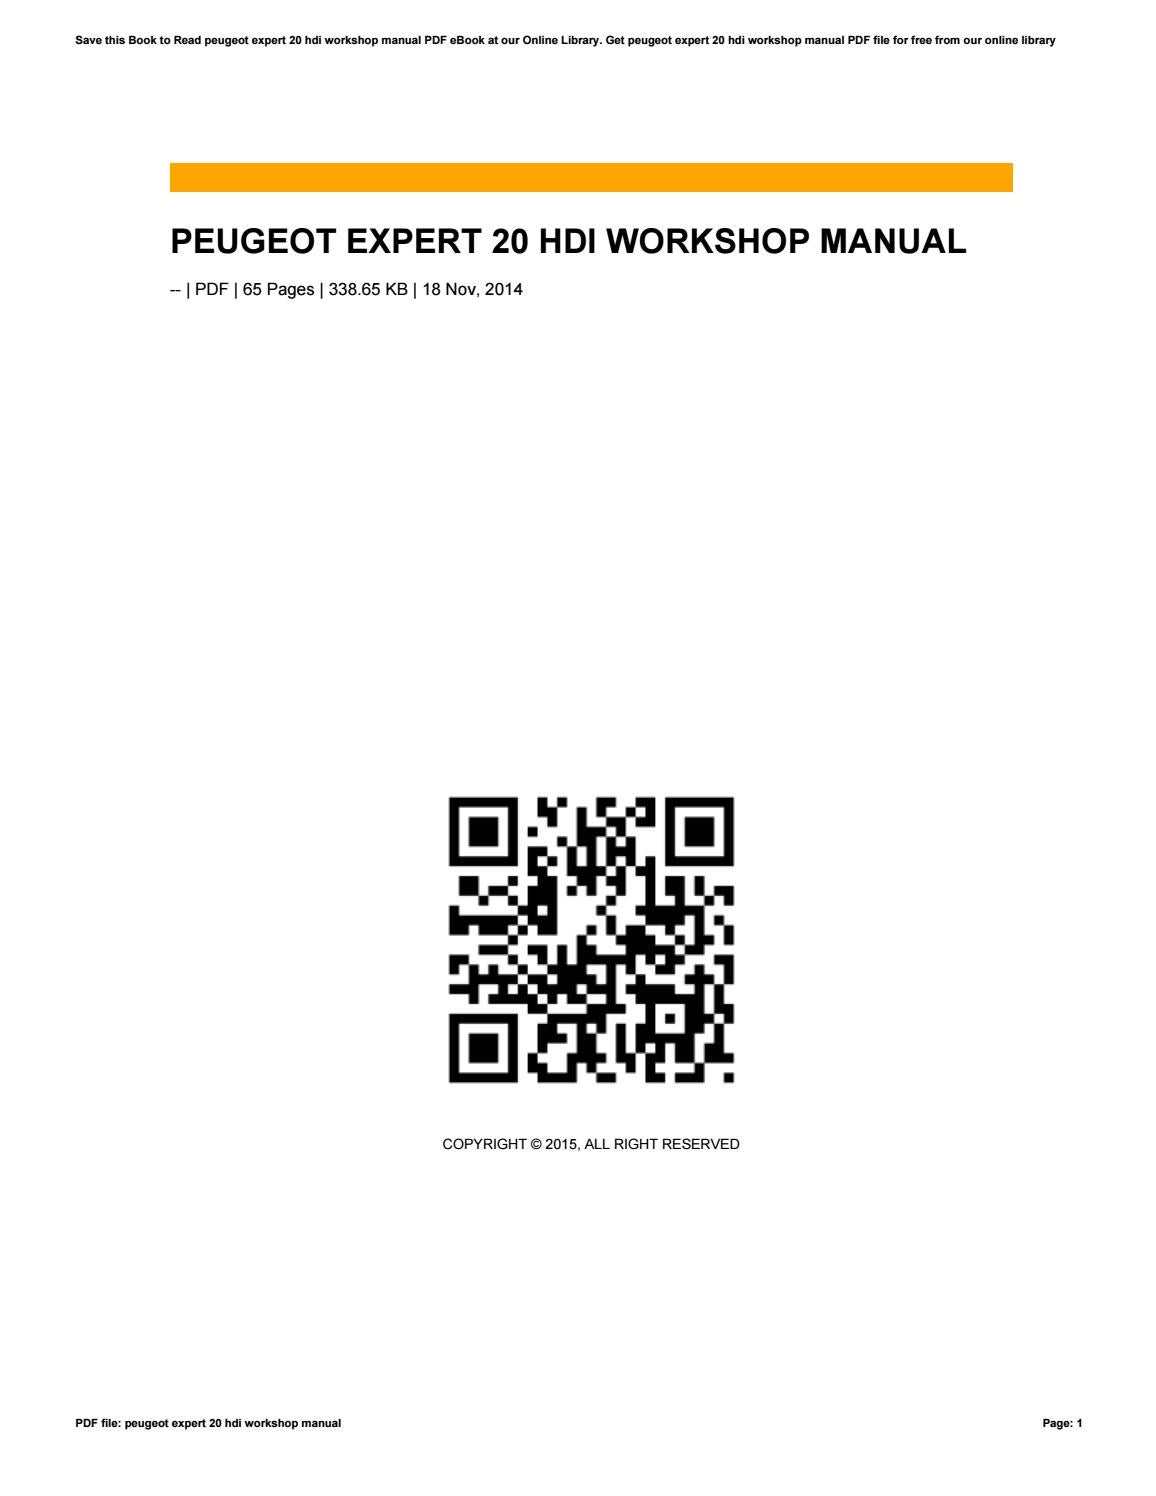 Peugeot expert 20 hdi workshop manual by cetpass12 issuu fandeluxe Gallery